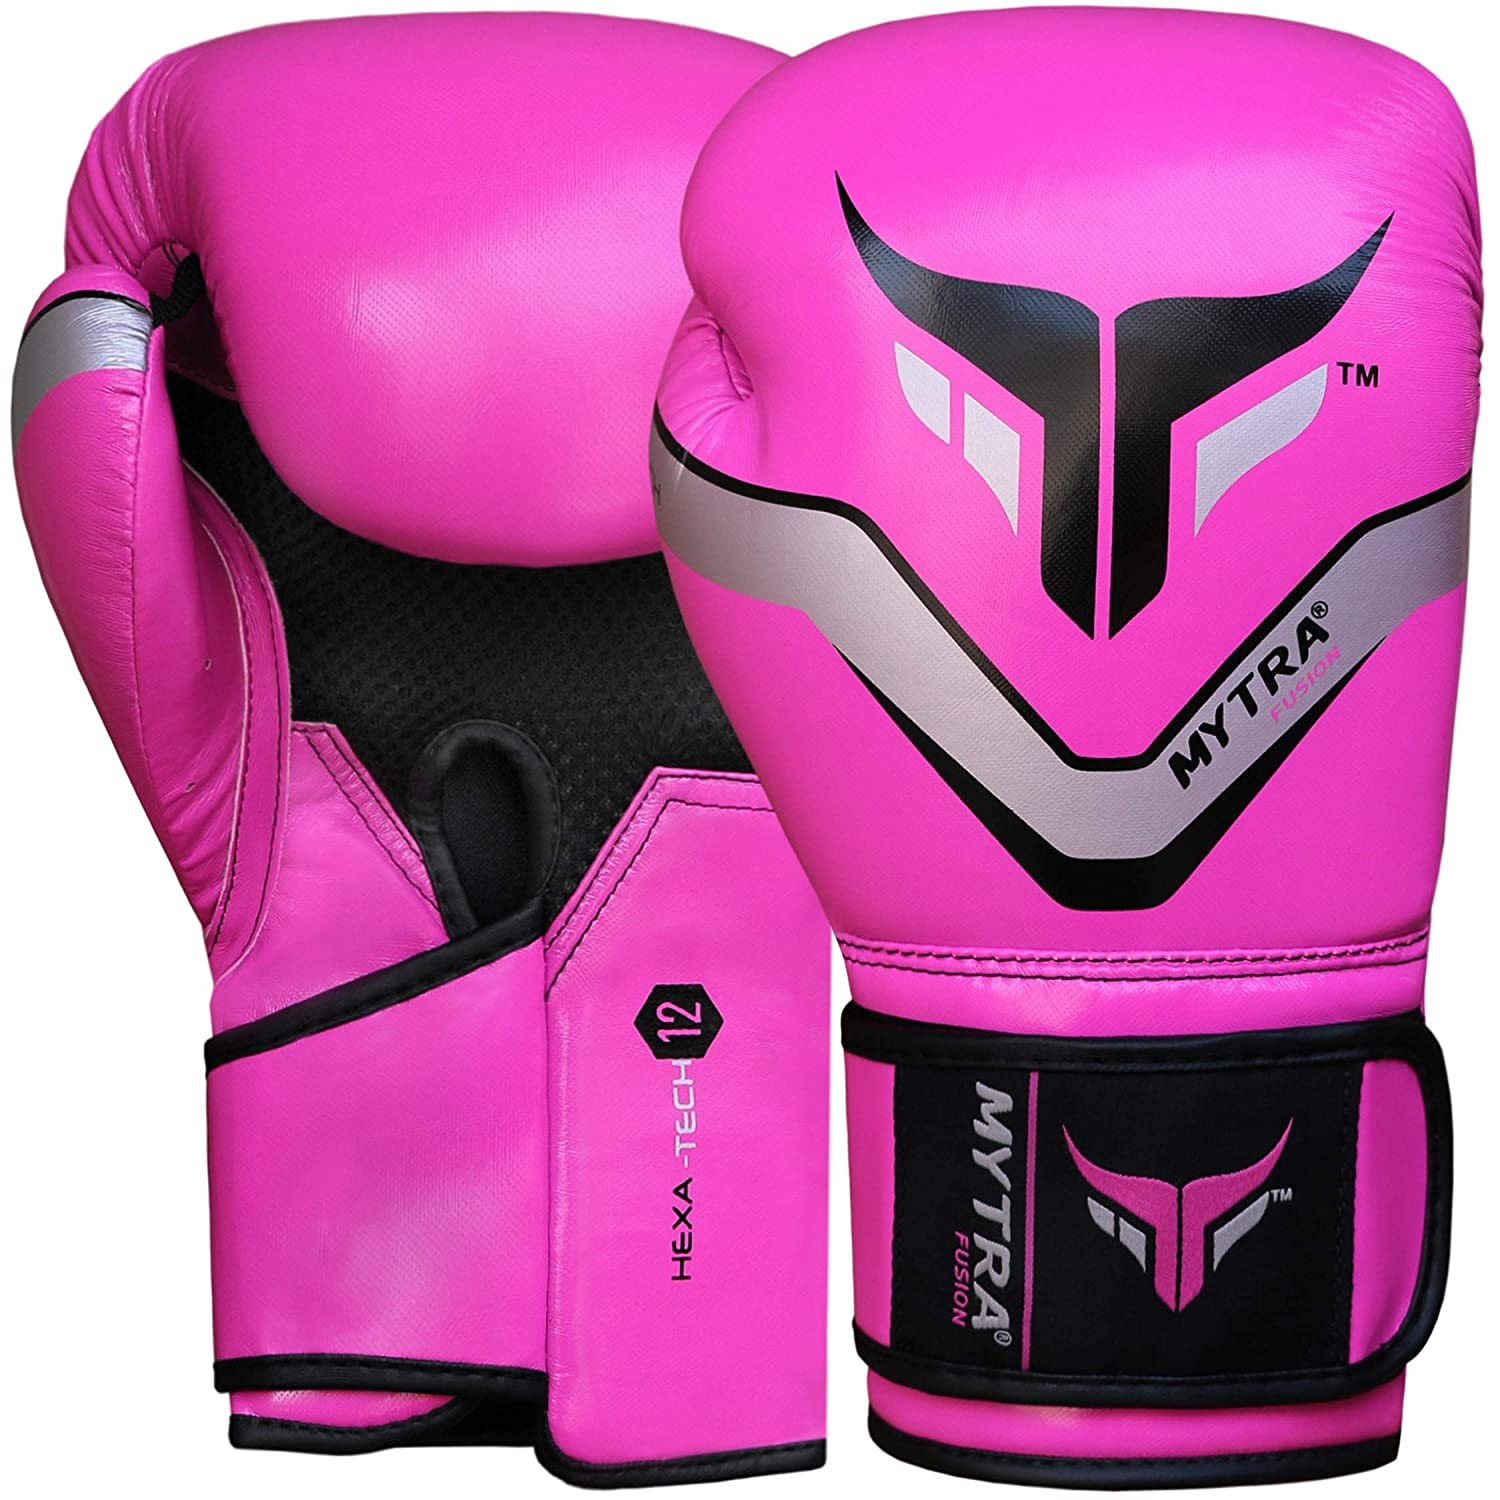 Mytra Fusion Hexa-Tech Boxing Gloves Synthetic Leather Boxing Gloves for Training Punching